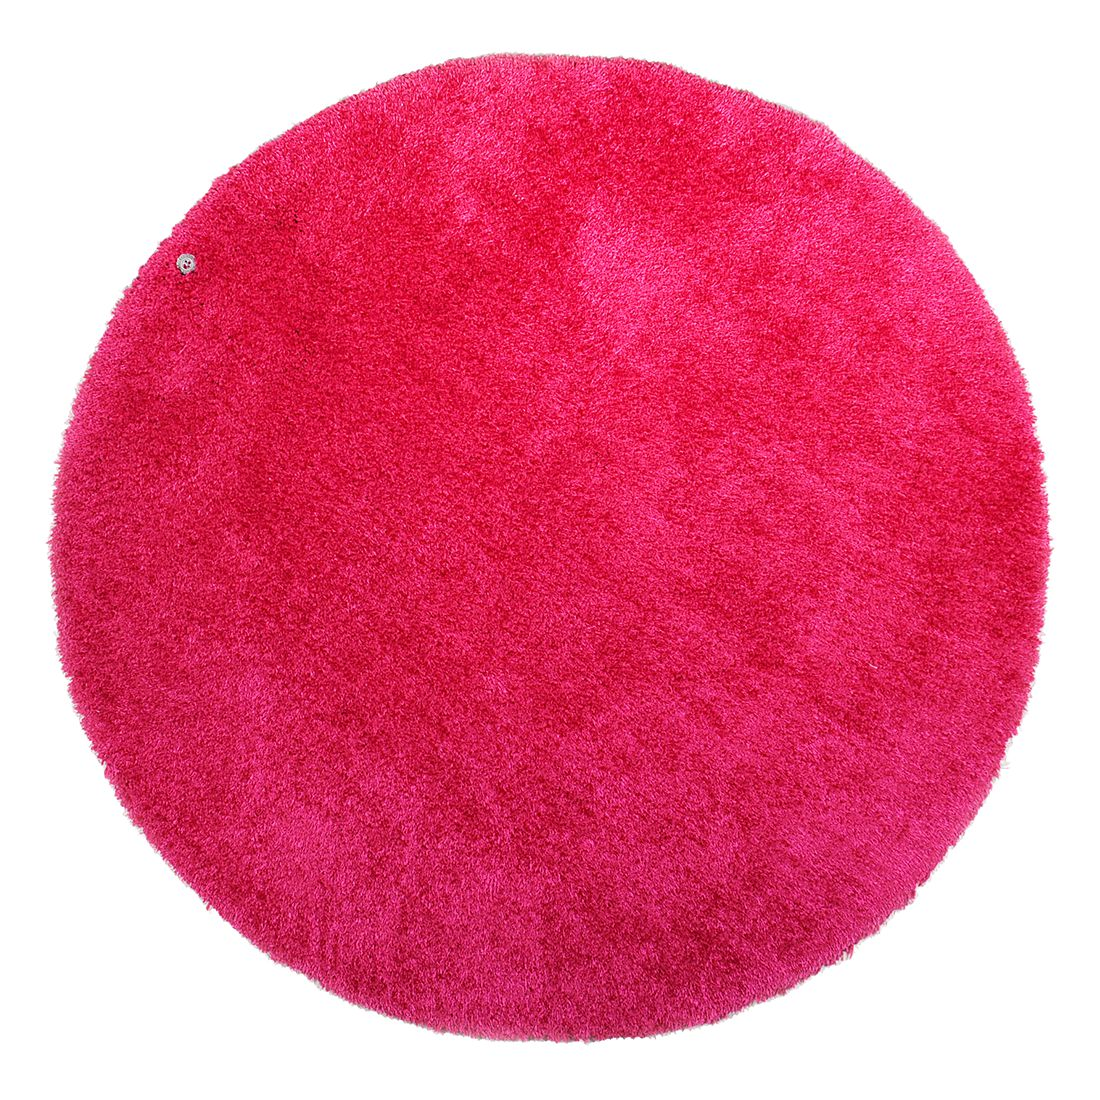 Home 24 - Tapis soft round - rose - dimensions : 140 x 140 cm, tom tailor